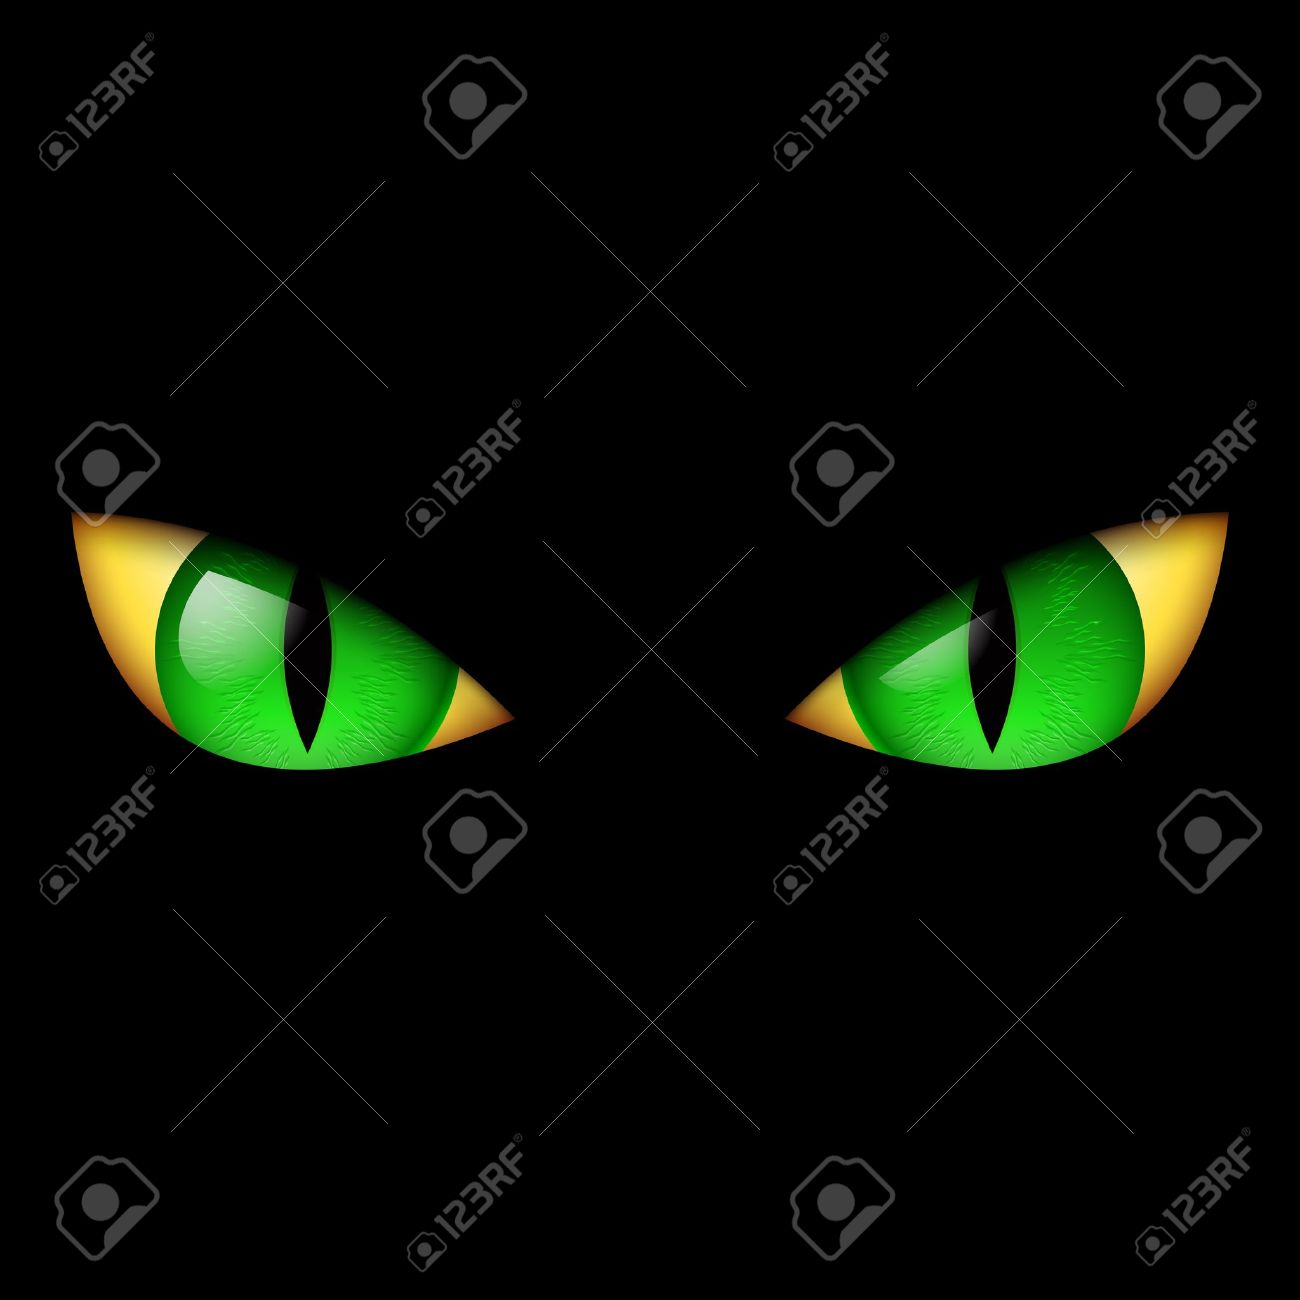 Scary Face Clipart Scary Face Evil Green Eye